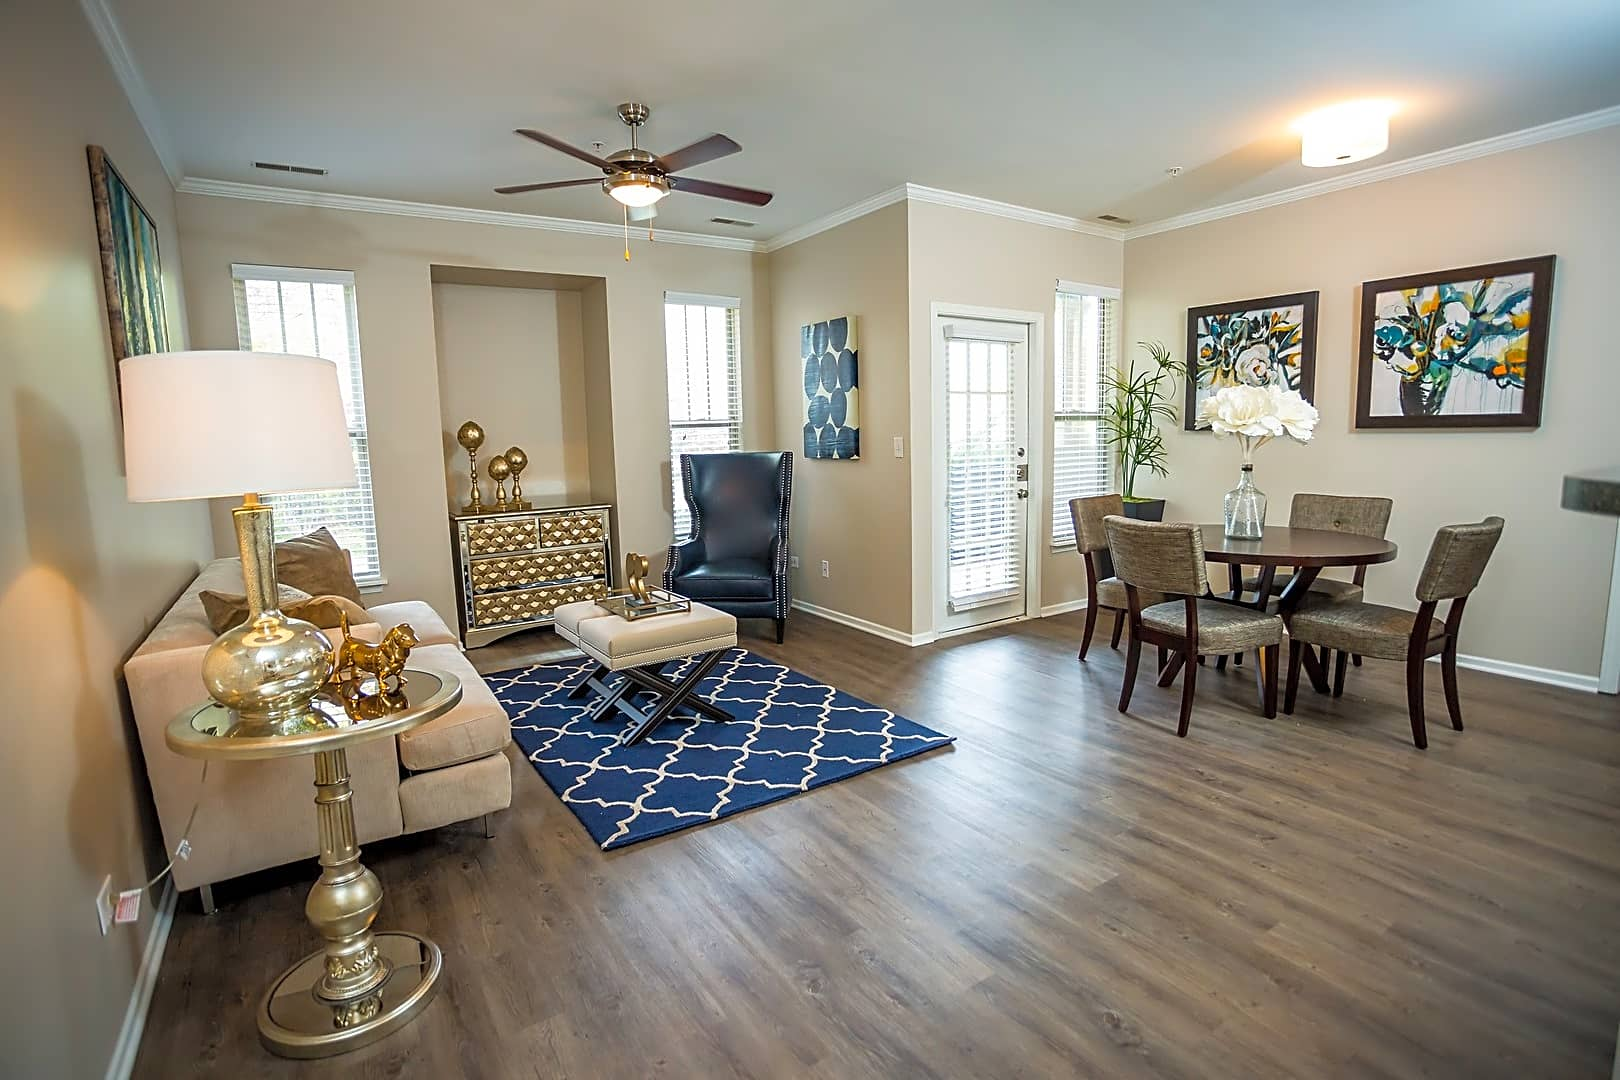 Apartments Near Lewis Meadows At River Run for Lewis University Students in Romeoville, IL